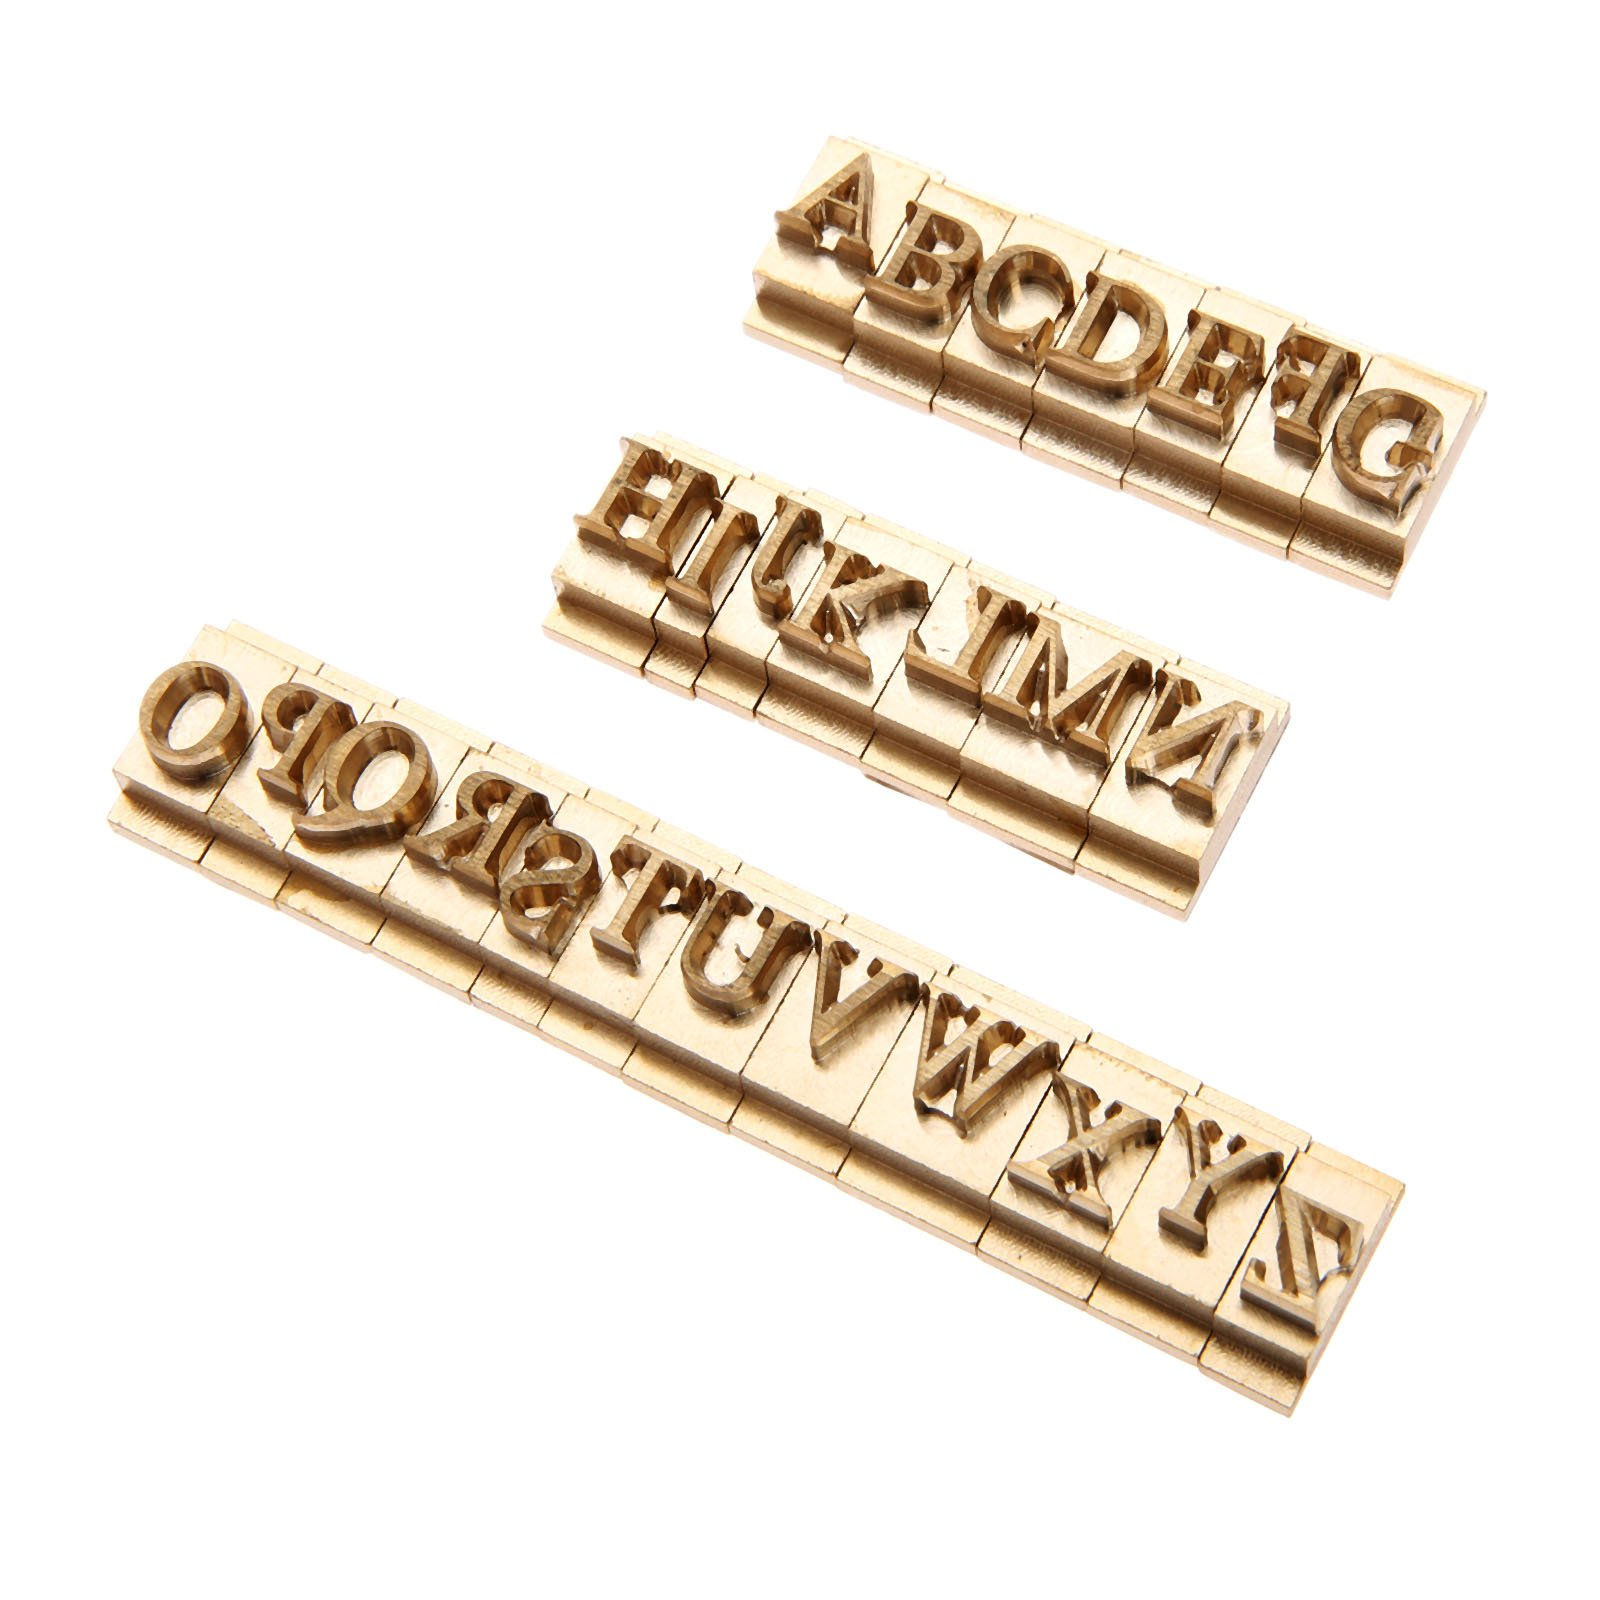 26pcs/Set Brass Alphabet Letter Font Stamp Mold Leather Craft Seal Tool A-Z Captal Letters by Hicello